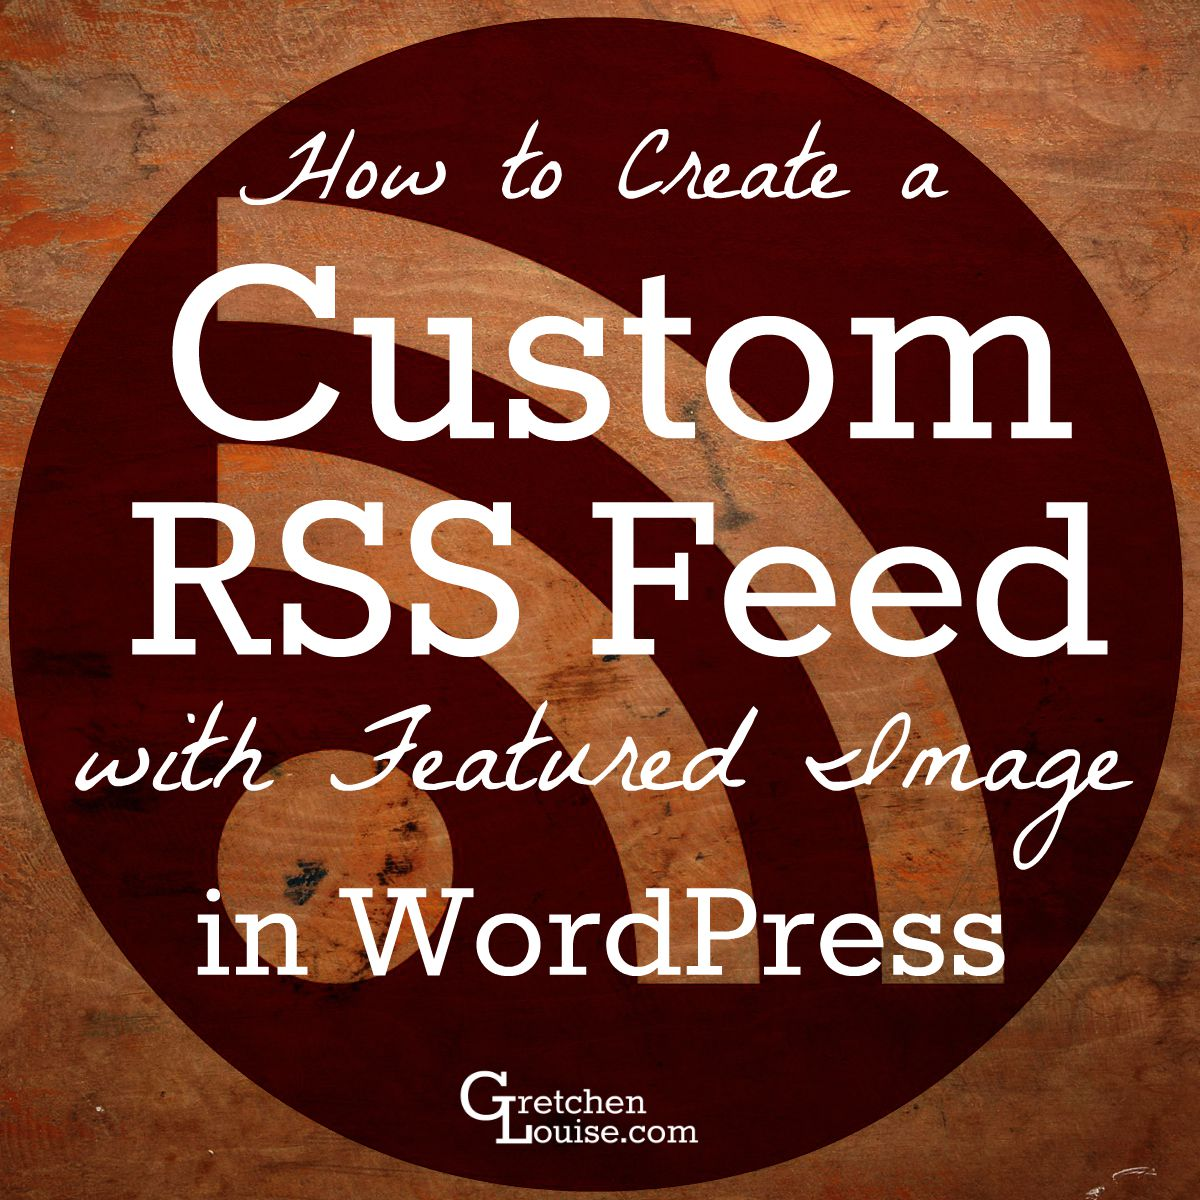 How to Create a Custom RSS Feed Summary with Featured Image in WordPress